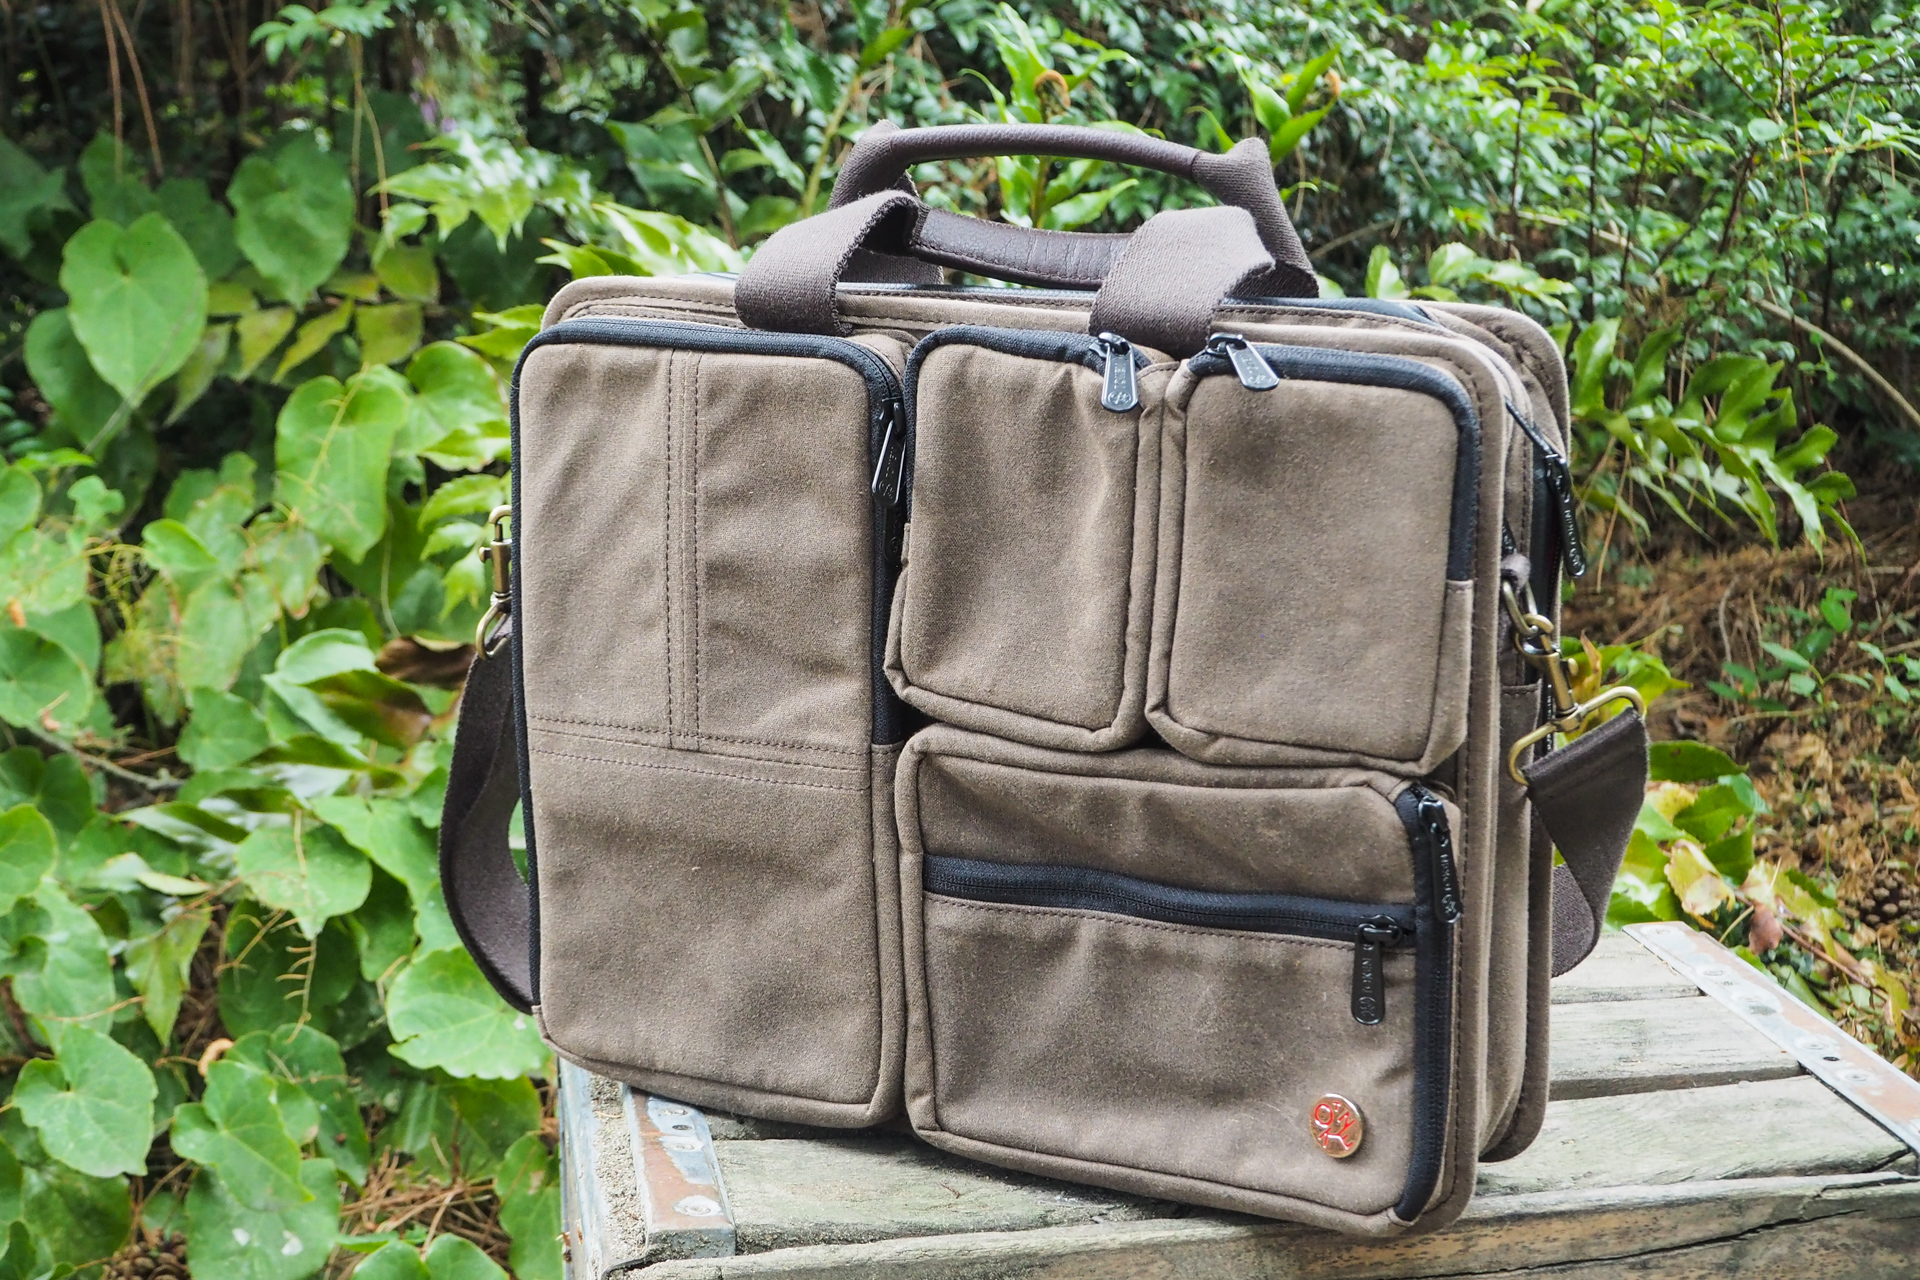 Waxed canvas bags from Waterfield, Manhattan Portage, Saddleback and more – TechCrunch 6